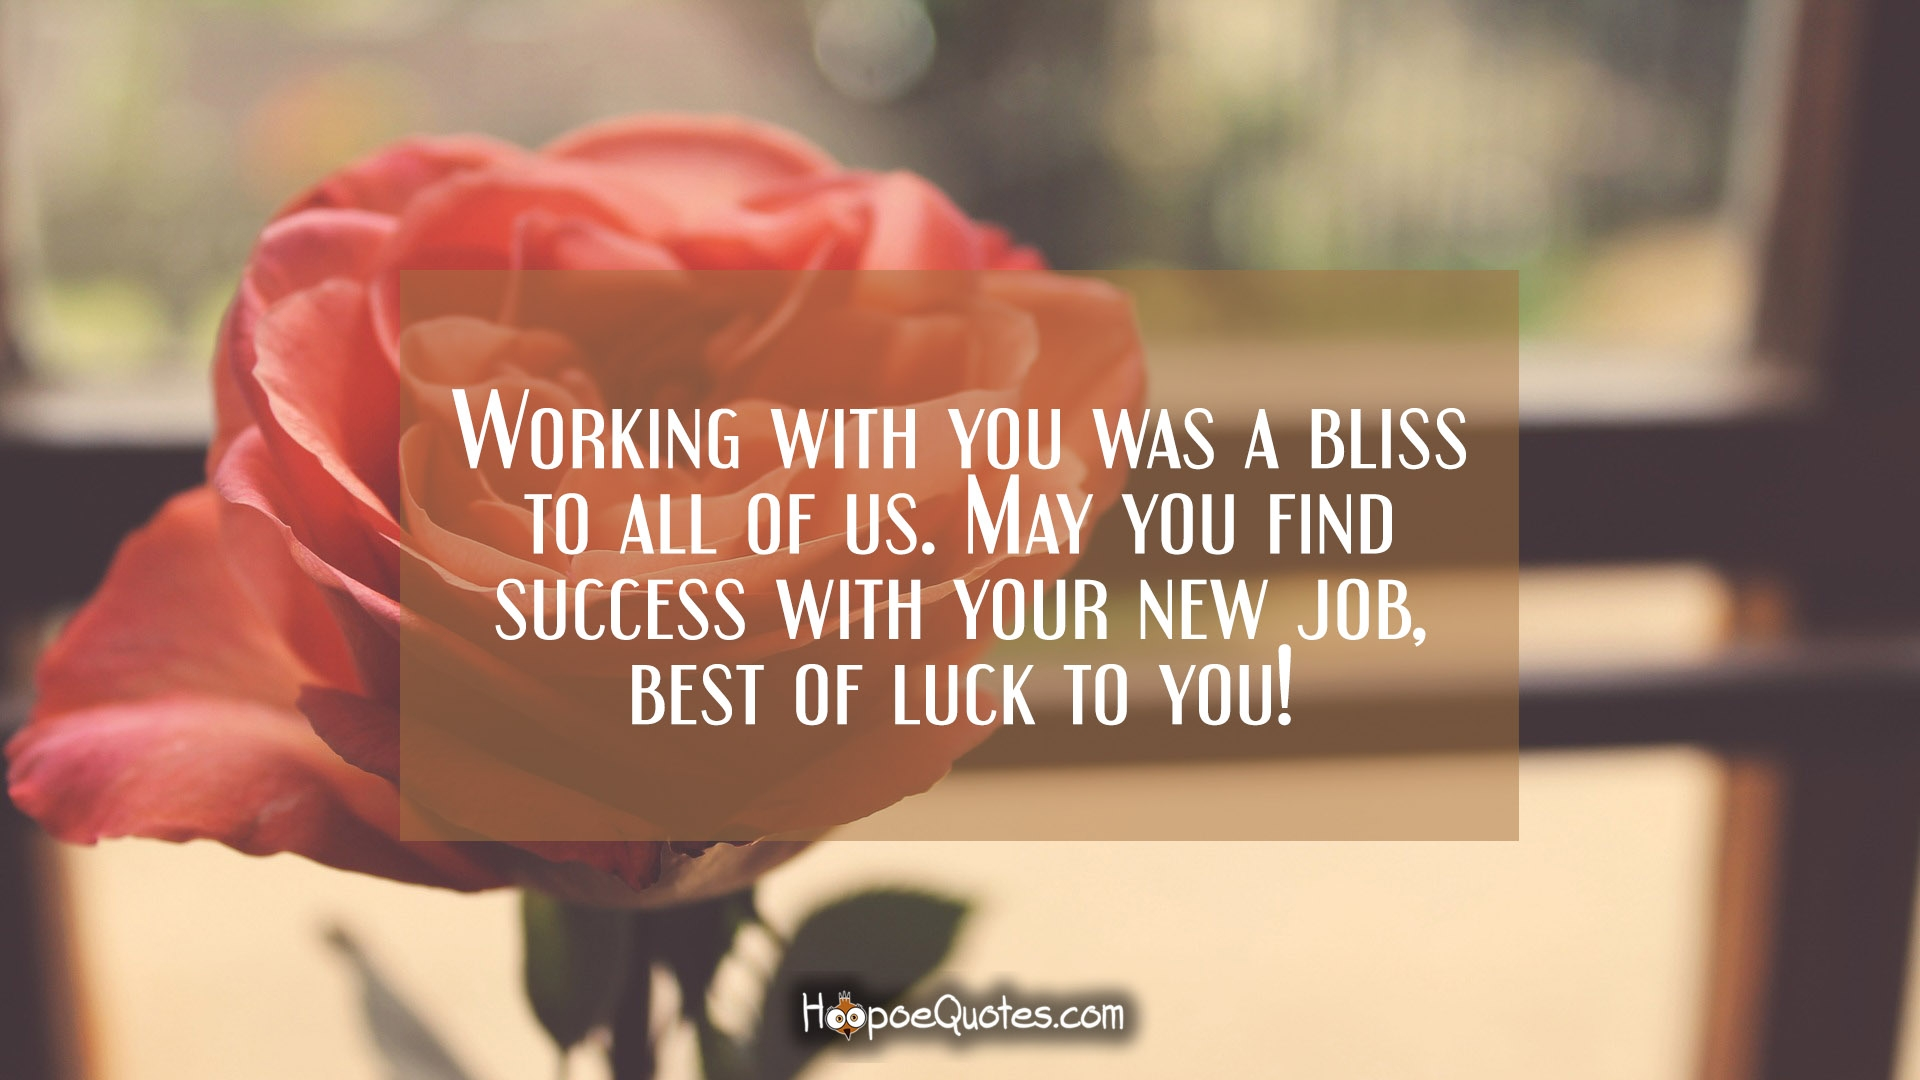 working with you was a bliss to all of us may you find success with your new job best of luck to you